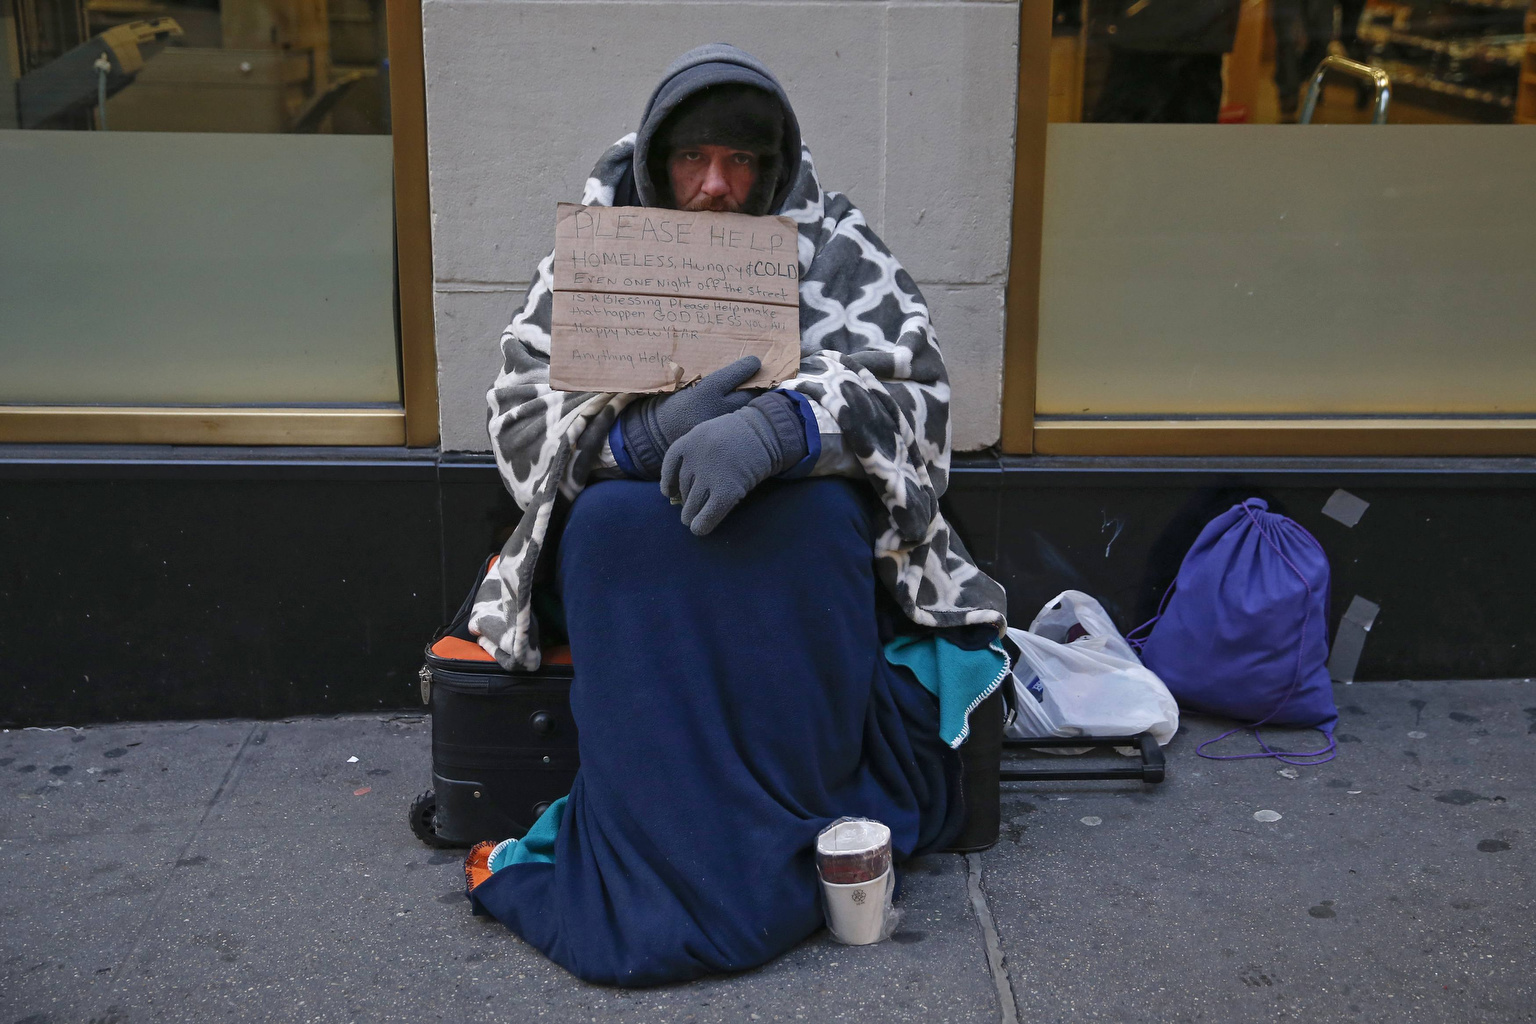 How do I write a narrative essay about a homeless person?